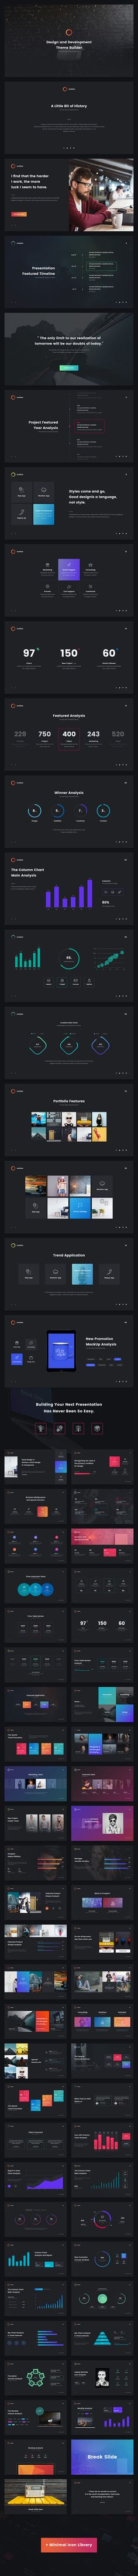 Motion - Creative & Multipurpose Template #keynote #awesome